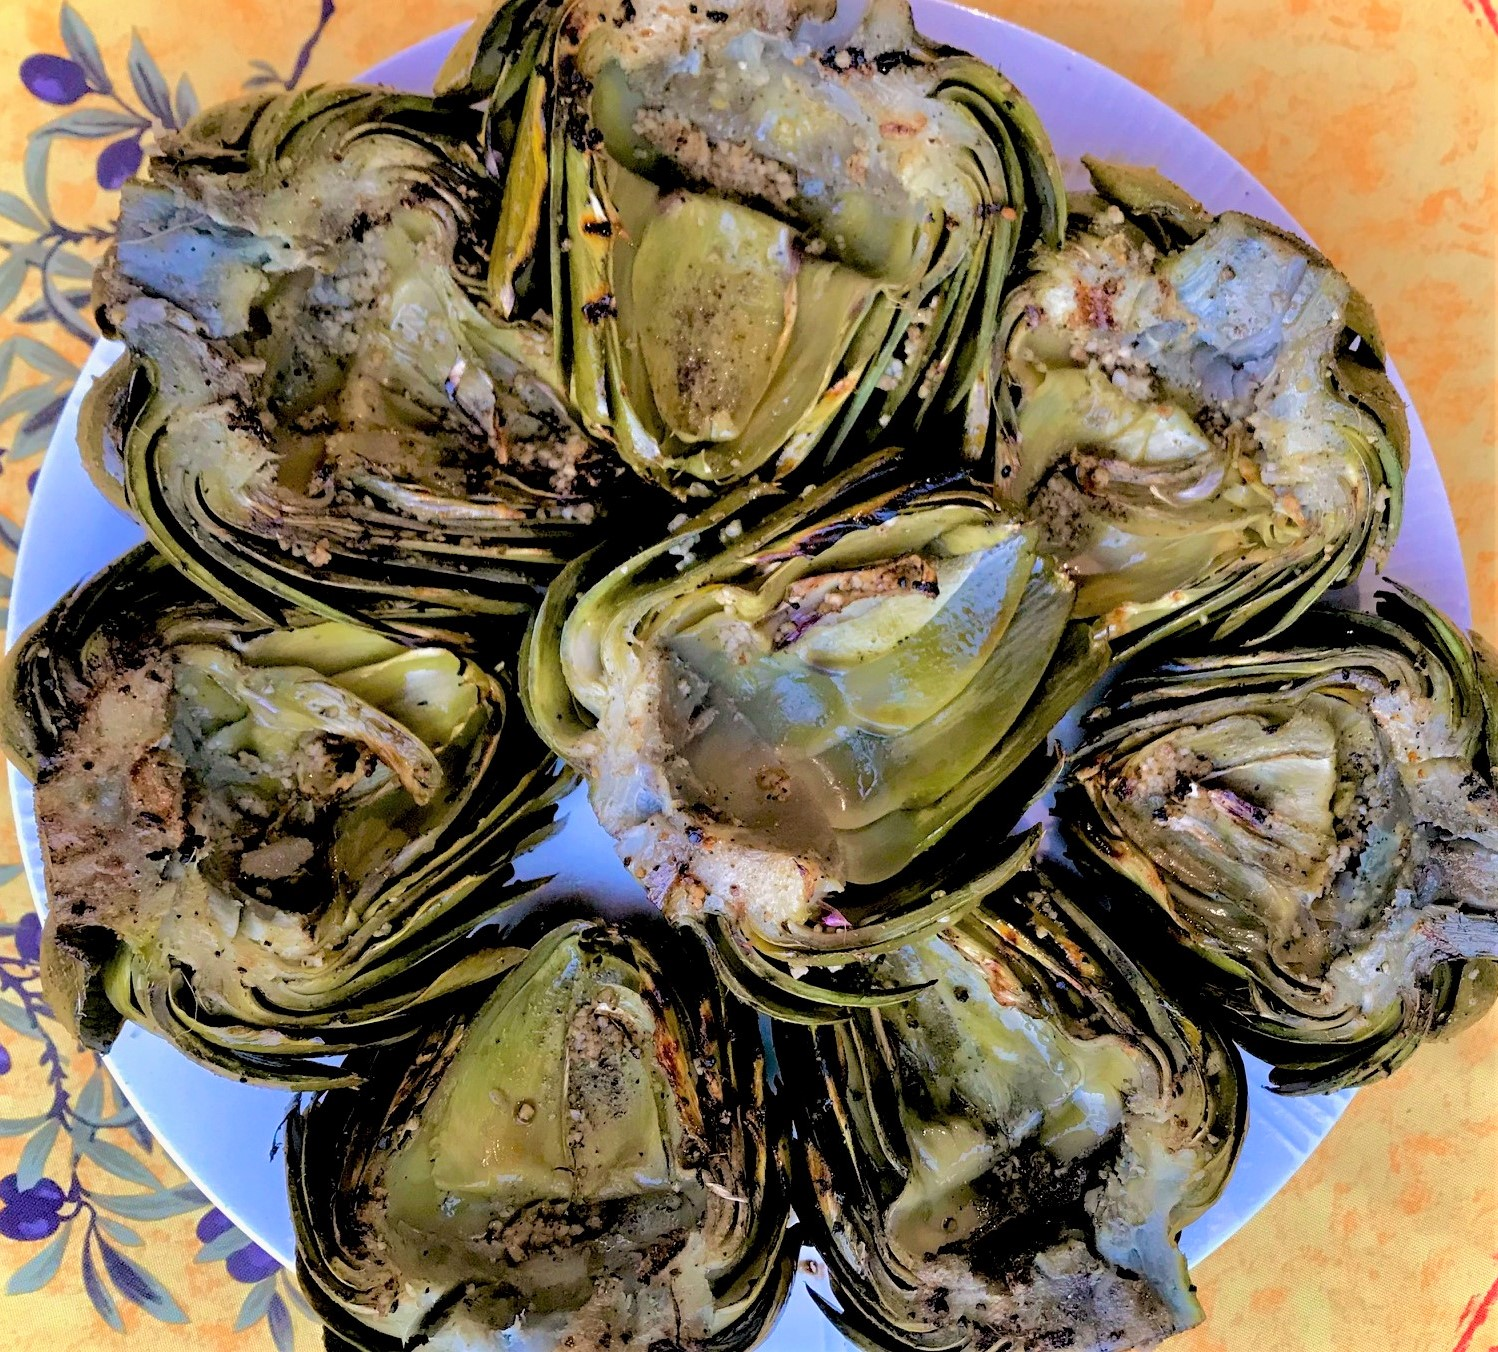 Grilled Artichokes Recipe with Lemon Dill Aioli